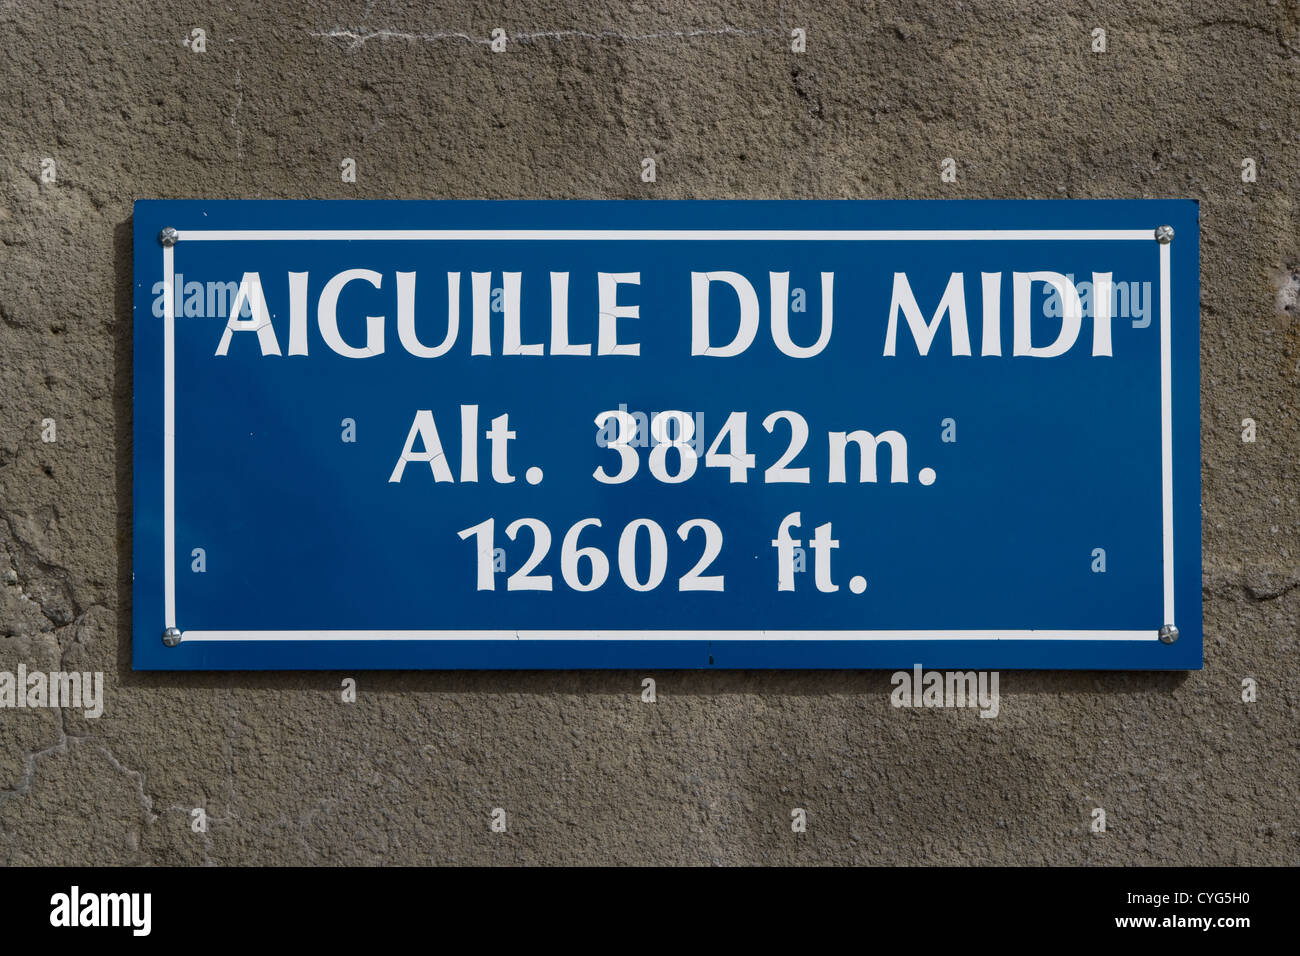 Mont Blanc - signage at Aiguille du Midi cable-car station [France] - Stock Image